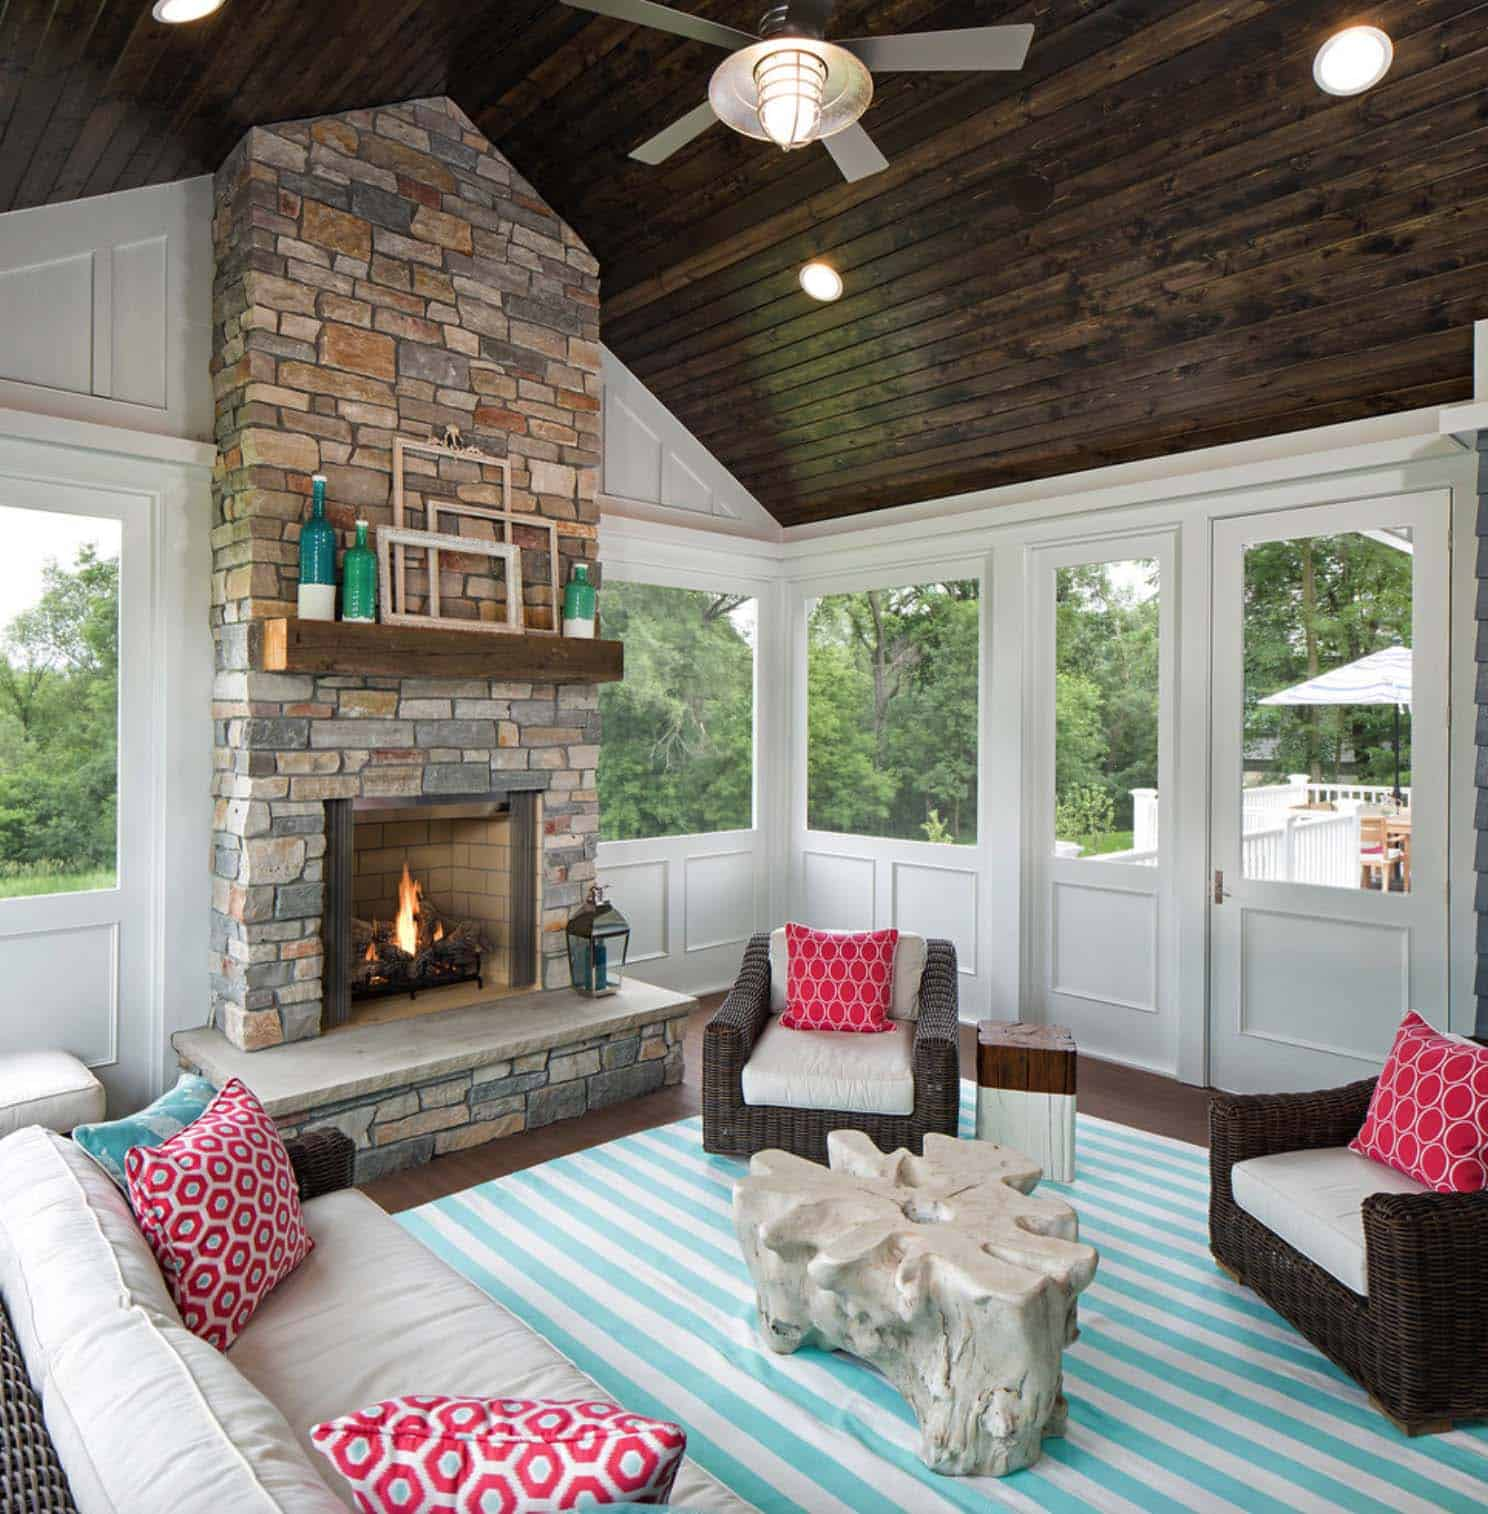 Enclosed Porch Decorating Ideas: 38 Amazingly Cozy And Relaxing Screened Porch Design Ideas